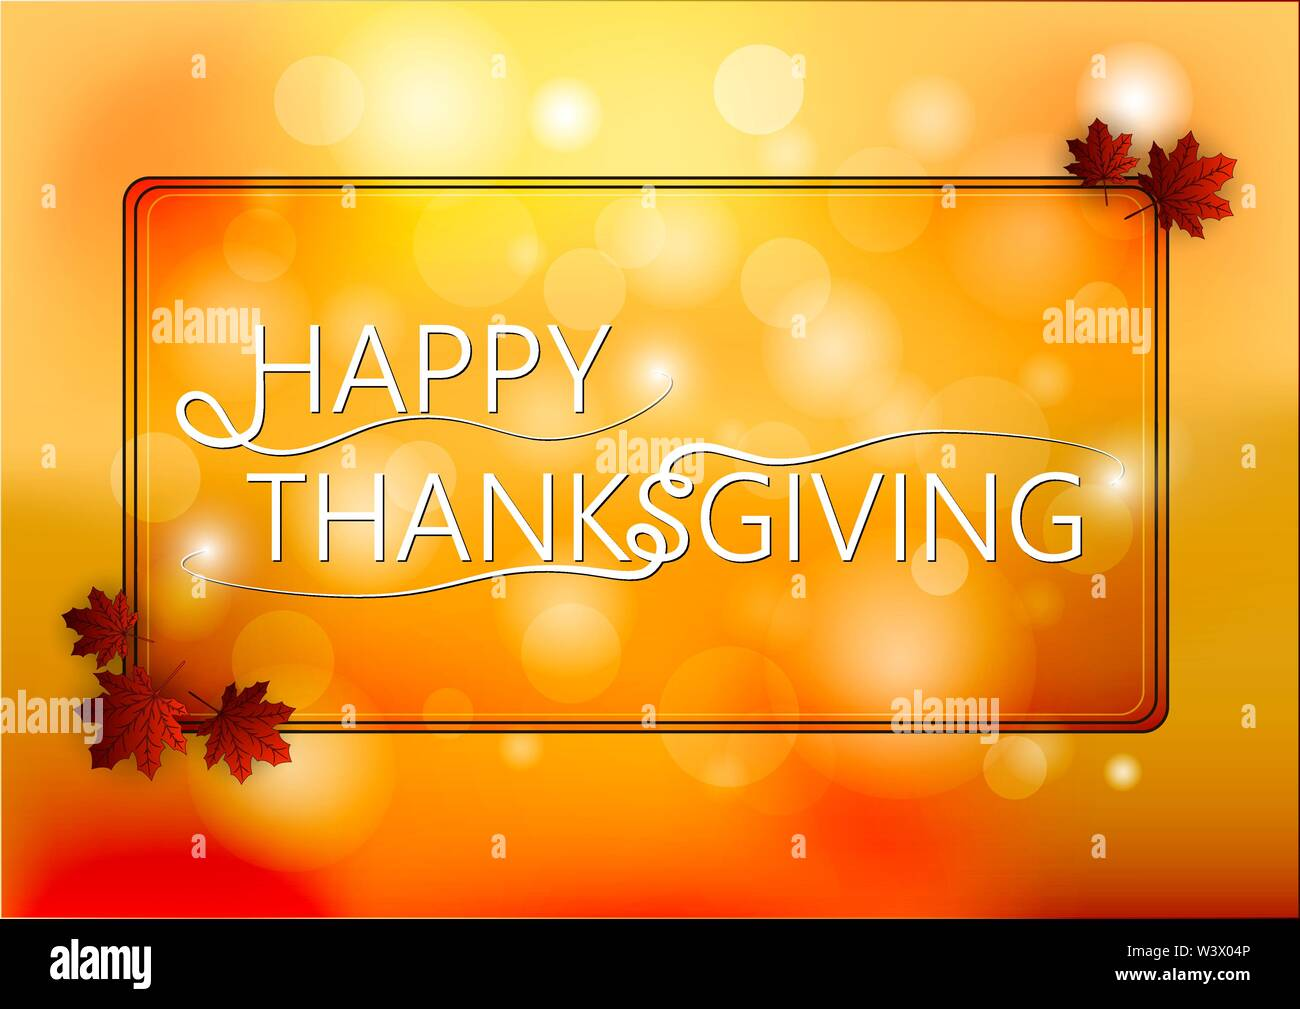 Happy Thanksgiving Day logo template on blur autumn background. Vector illustration. - Stock Image